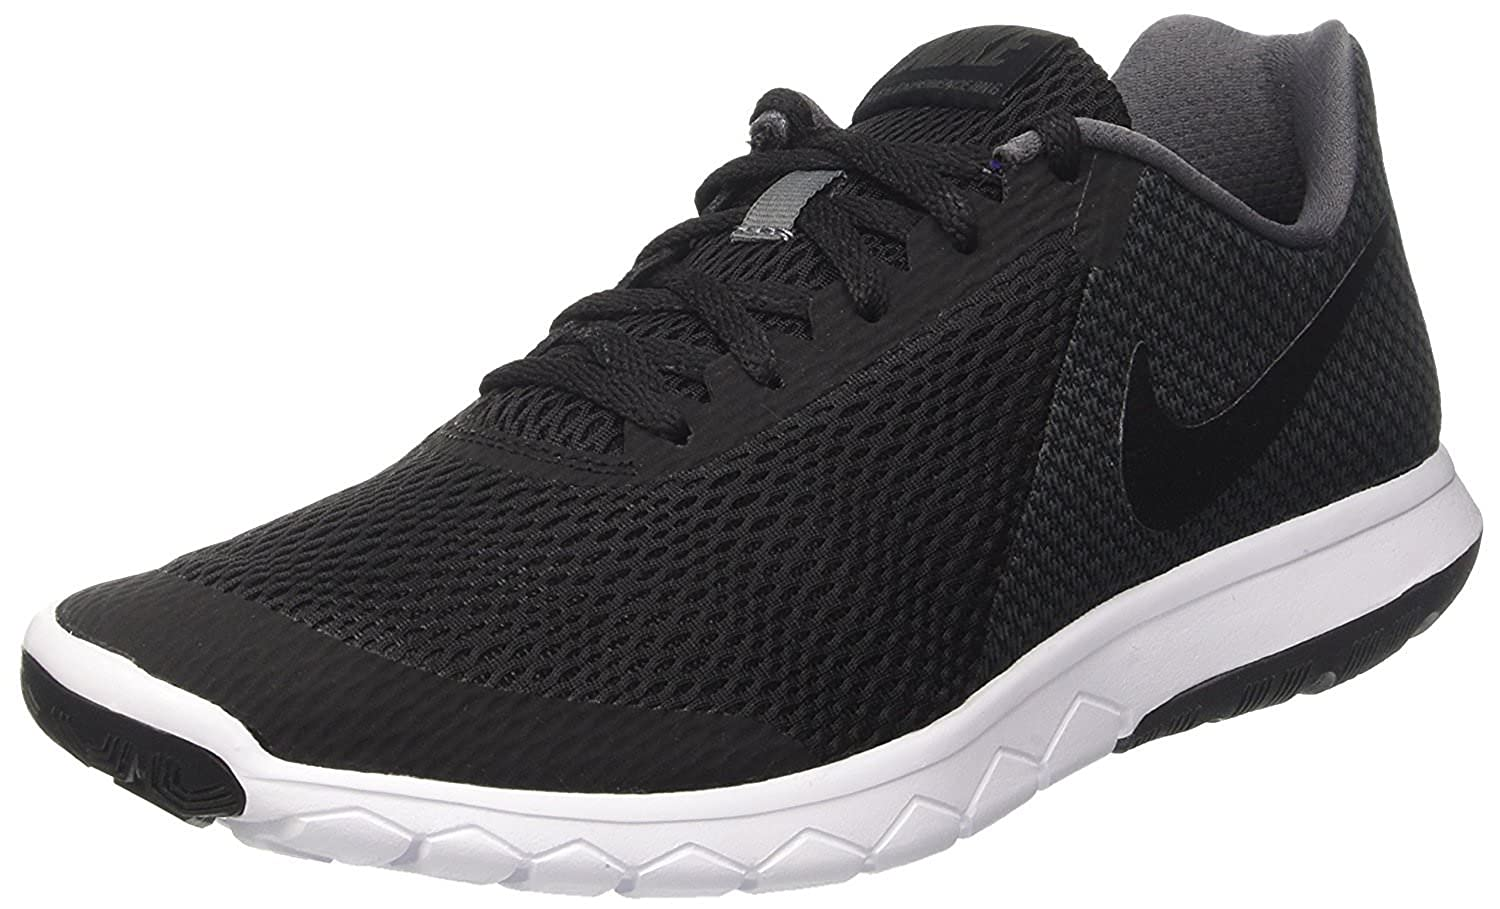 Nike Flex Experience RN6 Sports Running Shoes for Men Black Grey  Buy  Online at Low Prices in India - Amazon.in 3d76d19aeede